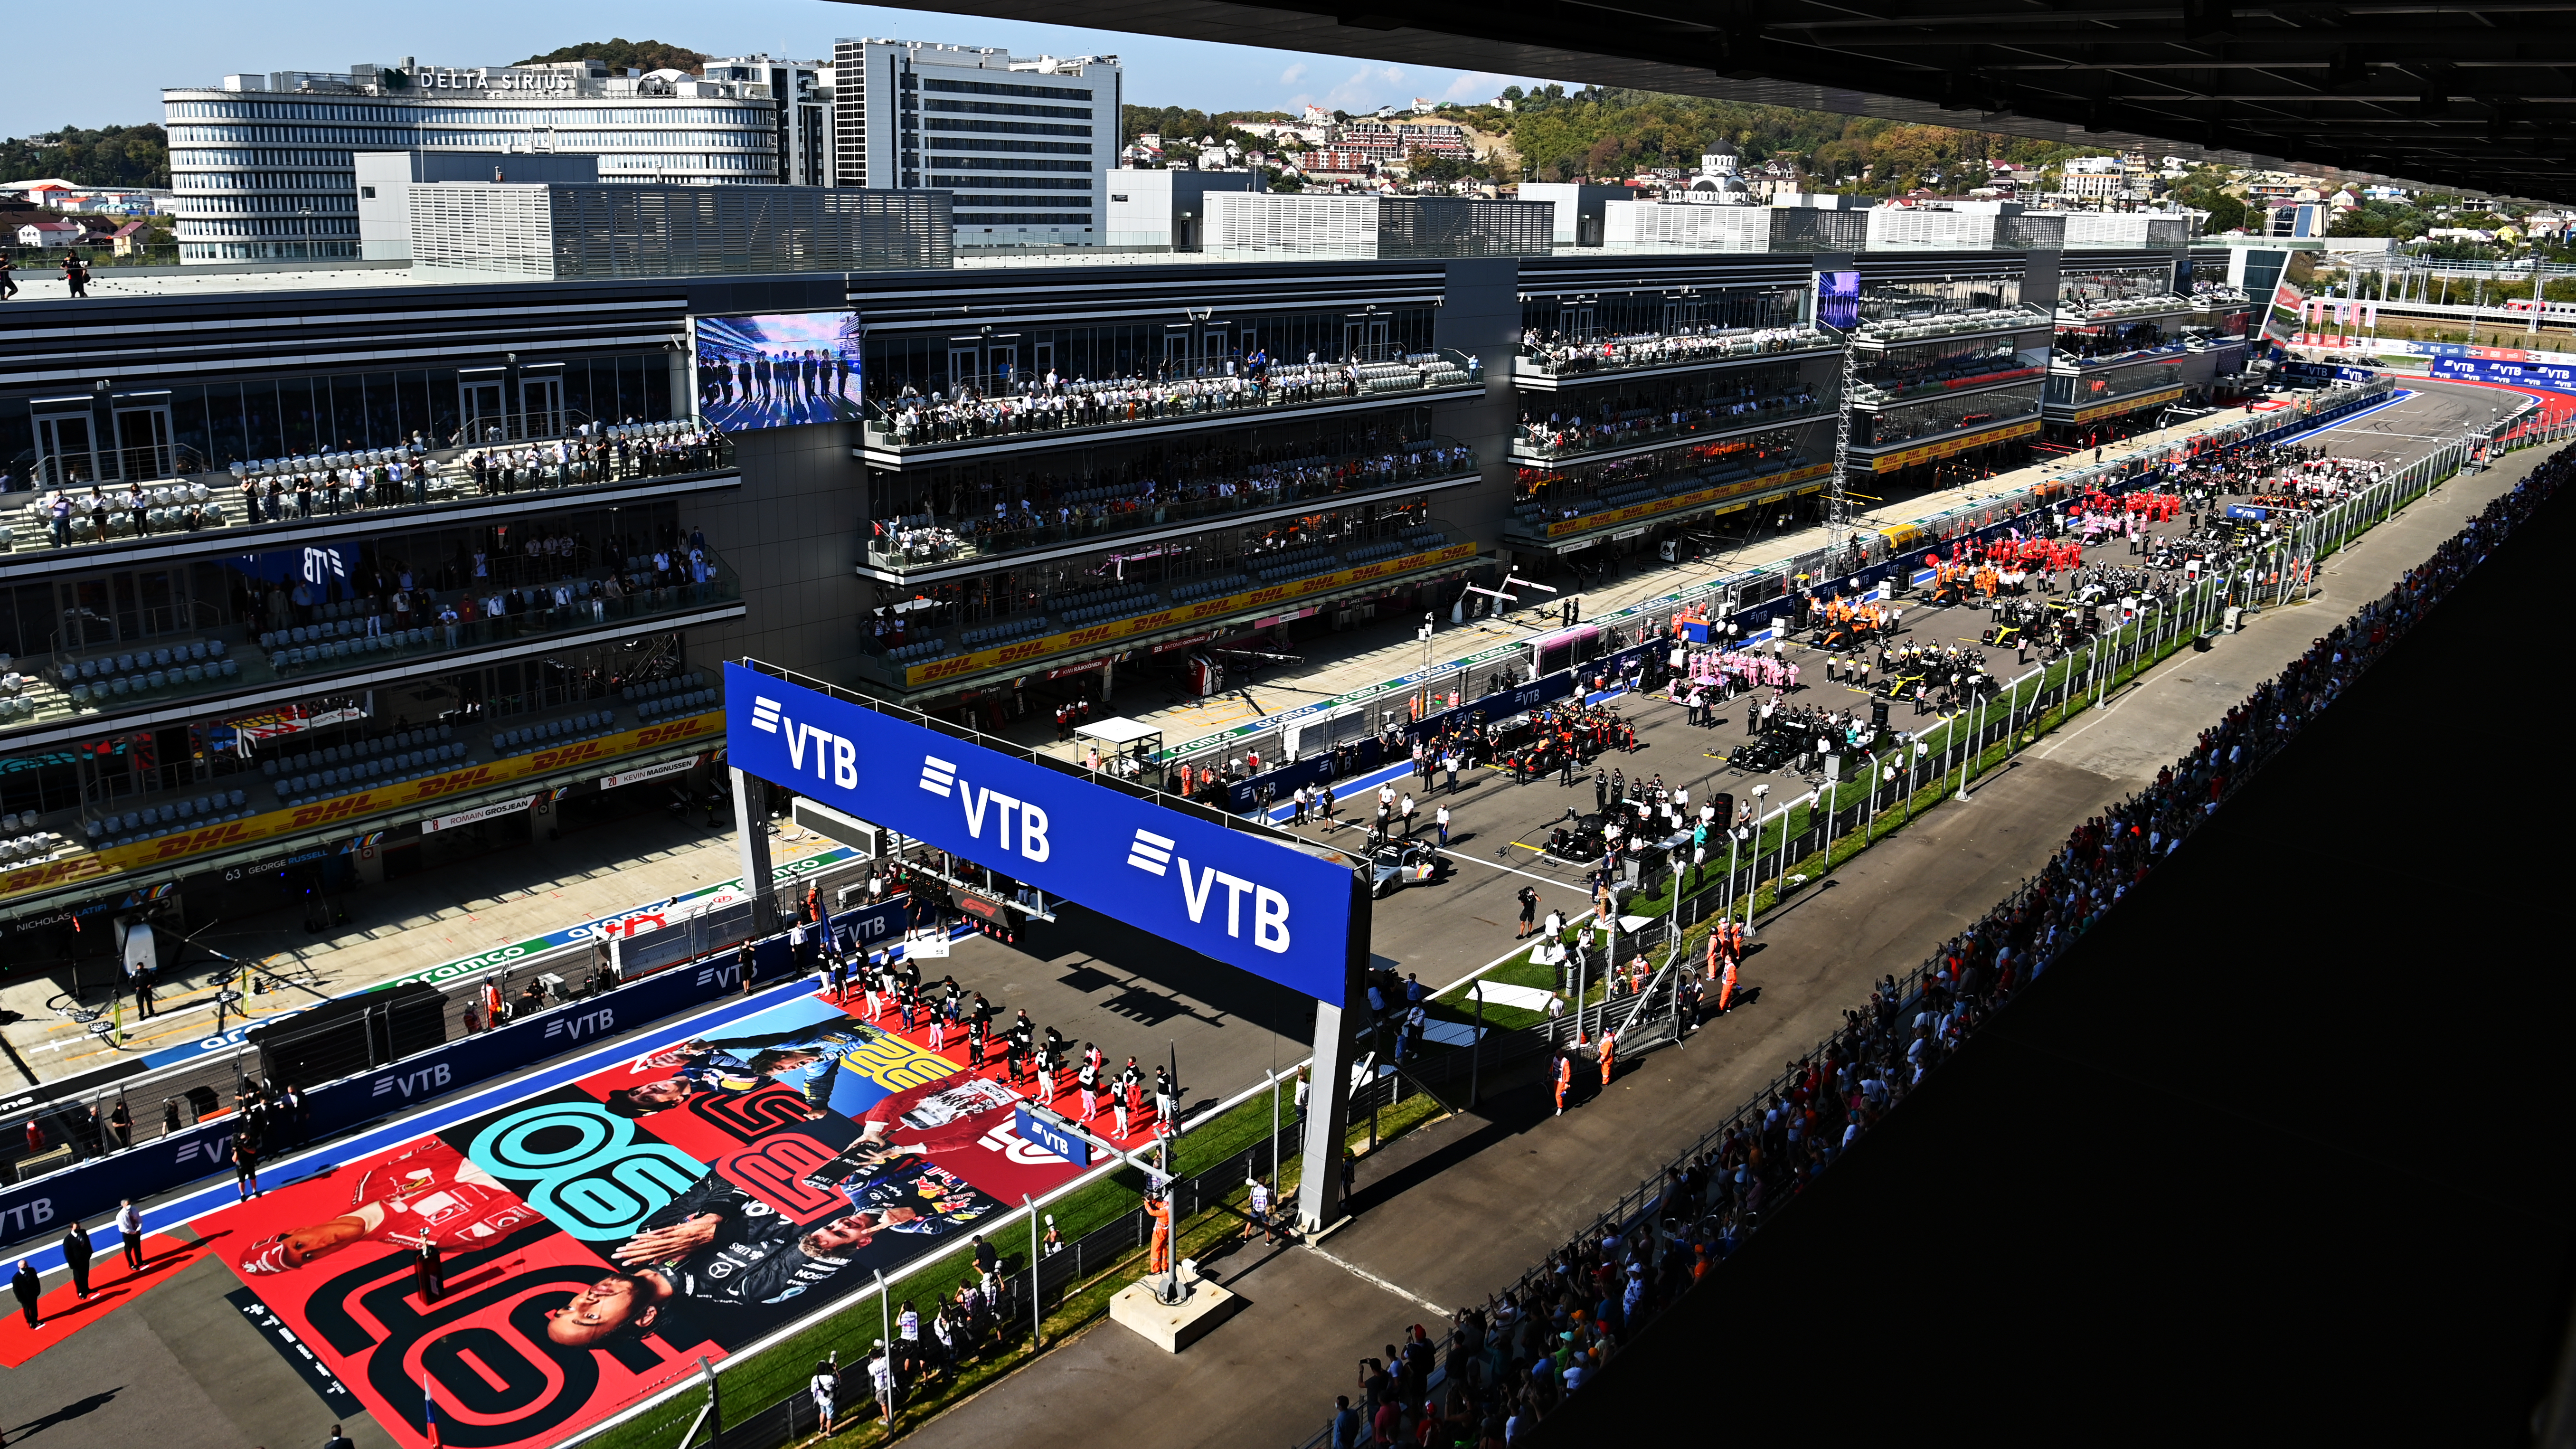 A general view over the grid before the F1 Grand Prix of Russia at Sochi Autodrom on September 27, 2020 in Sochi, Russia.